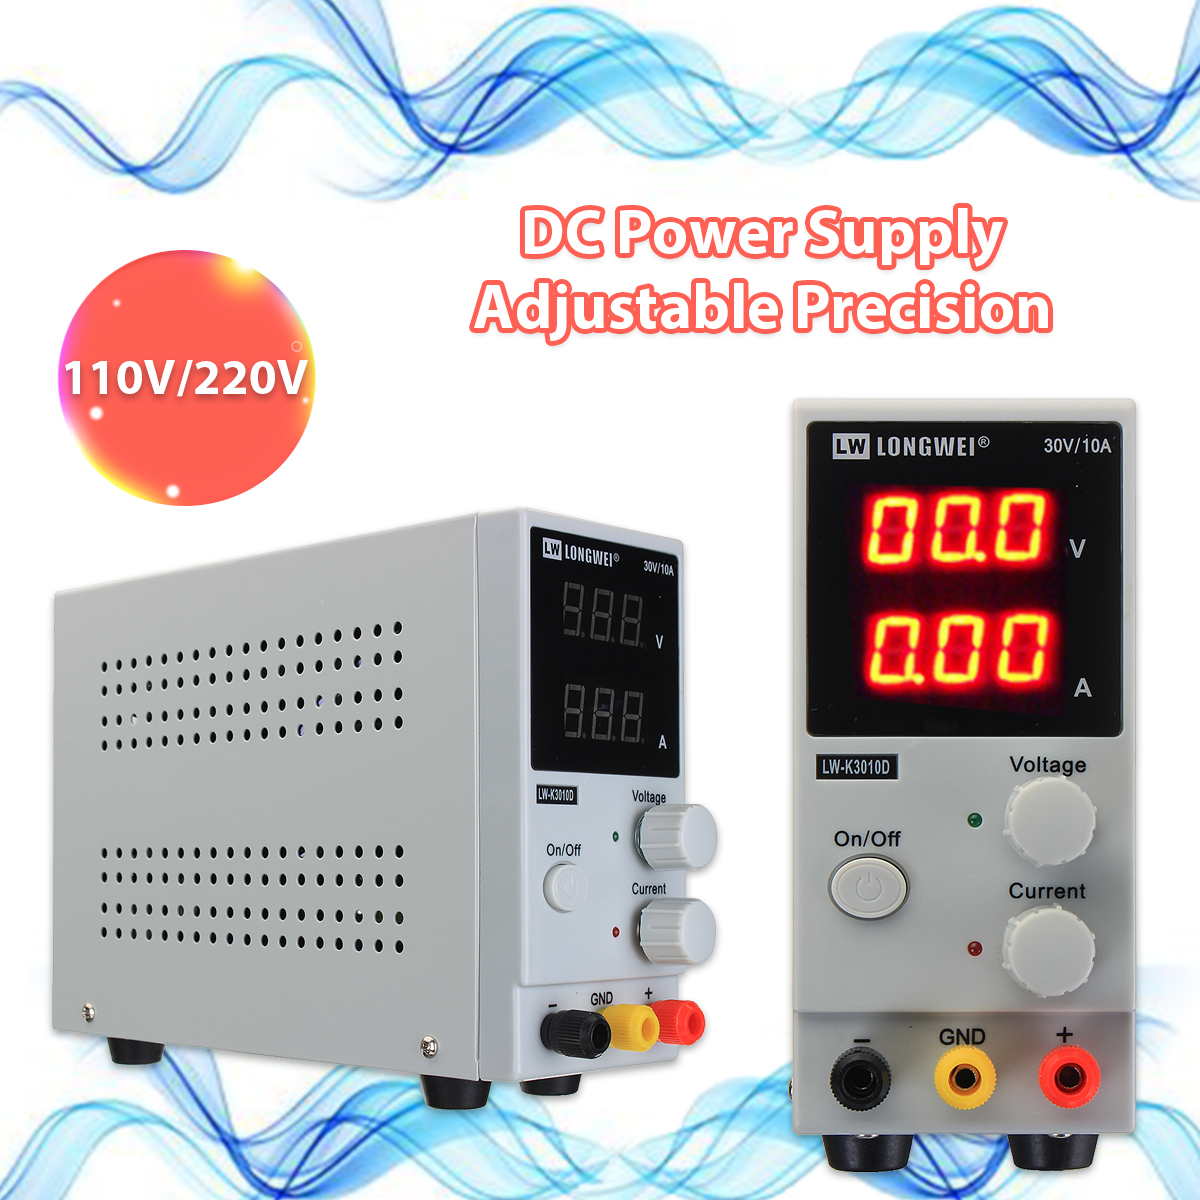 0-10A 0-30V 220V LCD DC Power Supply Variable Adjustable Switching Regulated Power Supply Digital Laboratory Voltage Regulator kps 3060d dc power supply 30v 60a adjustable power supply 30v 60a led high power switching variable dc power supply 220v